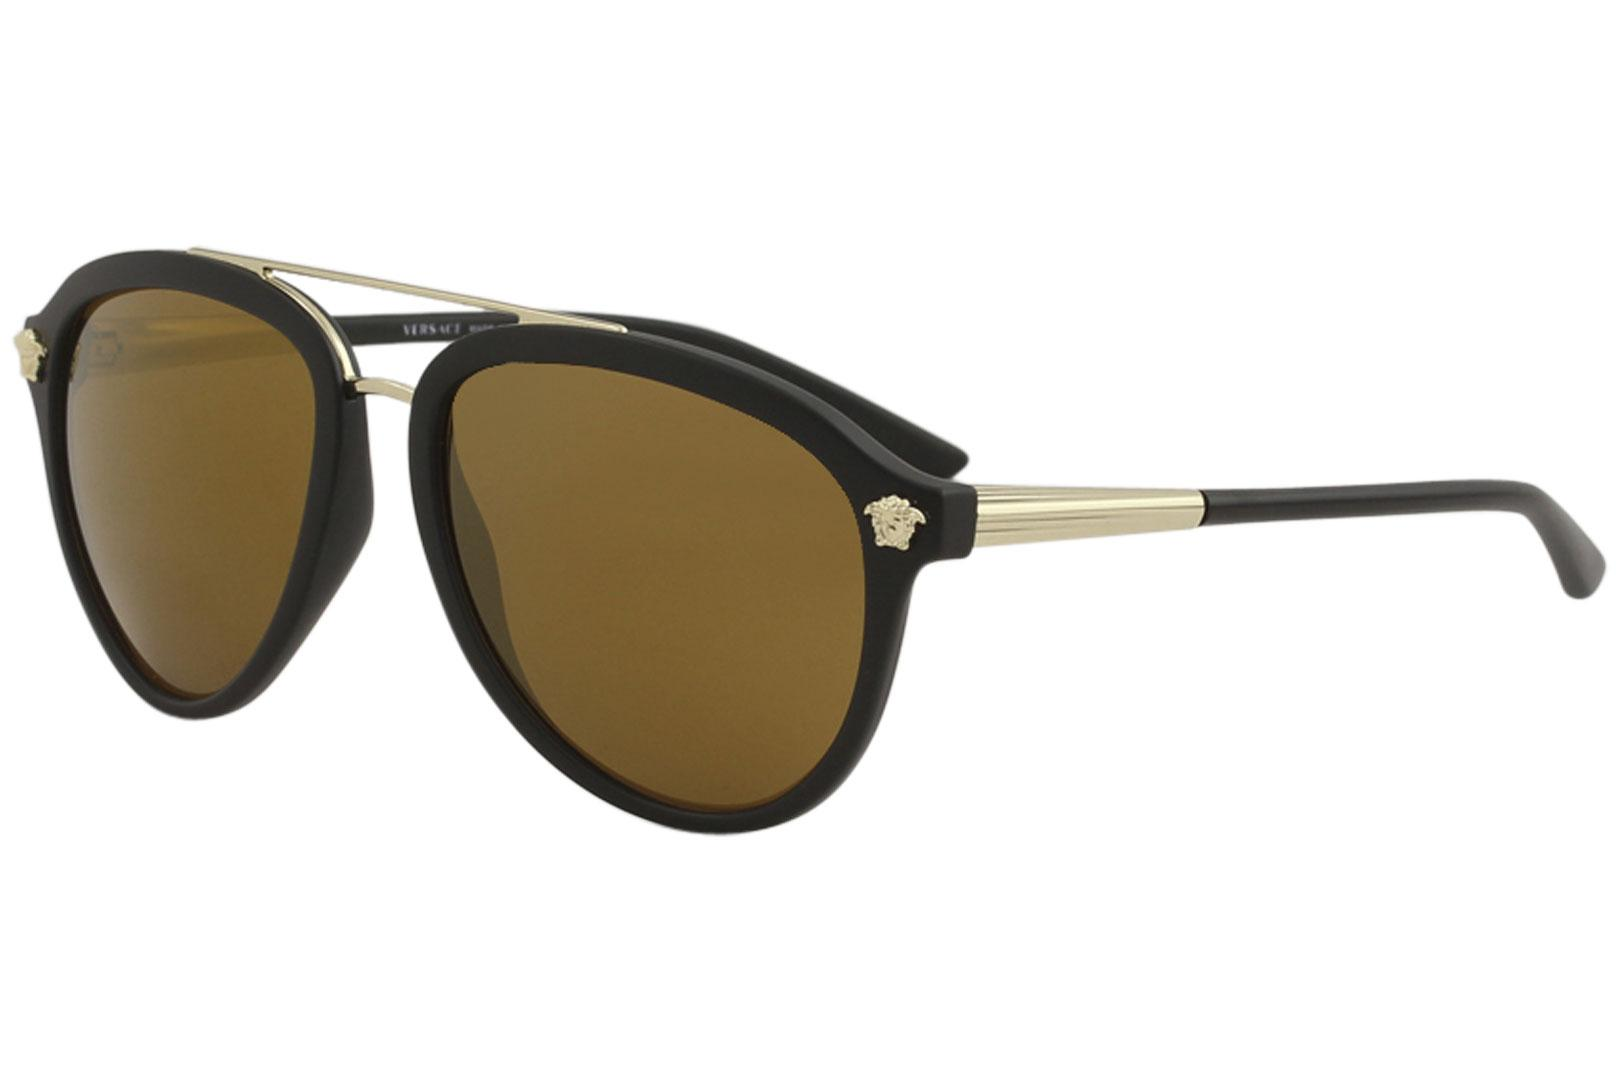 05fa5170cc7f9 Versace Men s VE4341 VE 4341 Fashion Pilot Sunglasses by Versace. Touch to  zoom